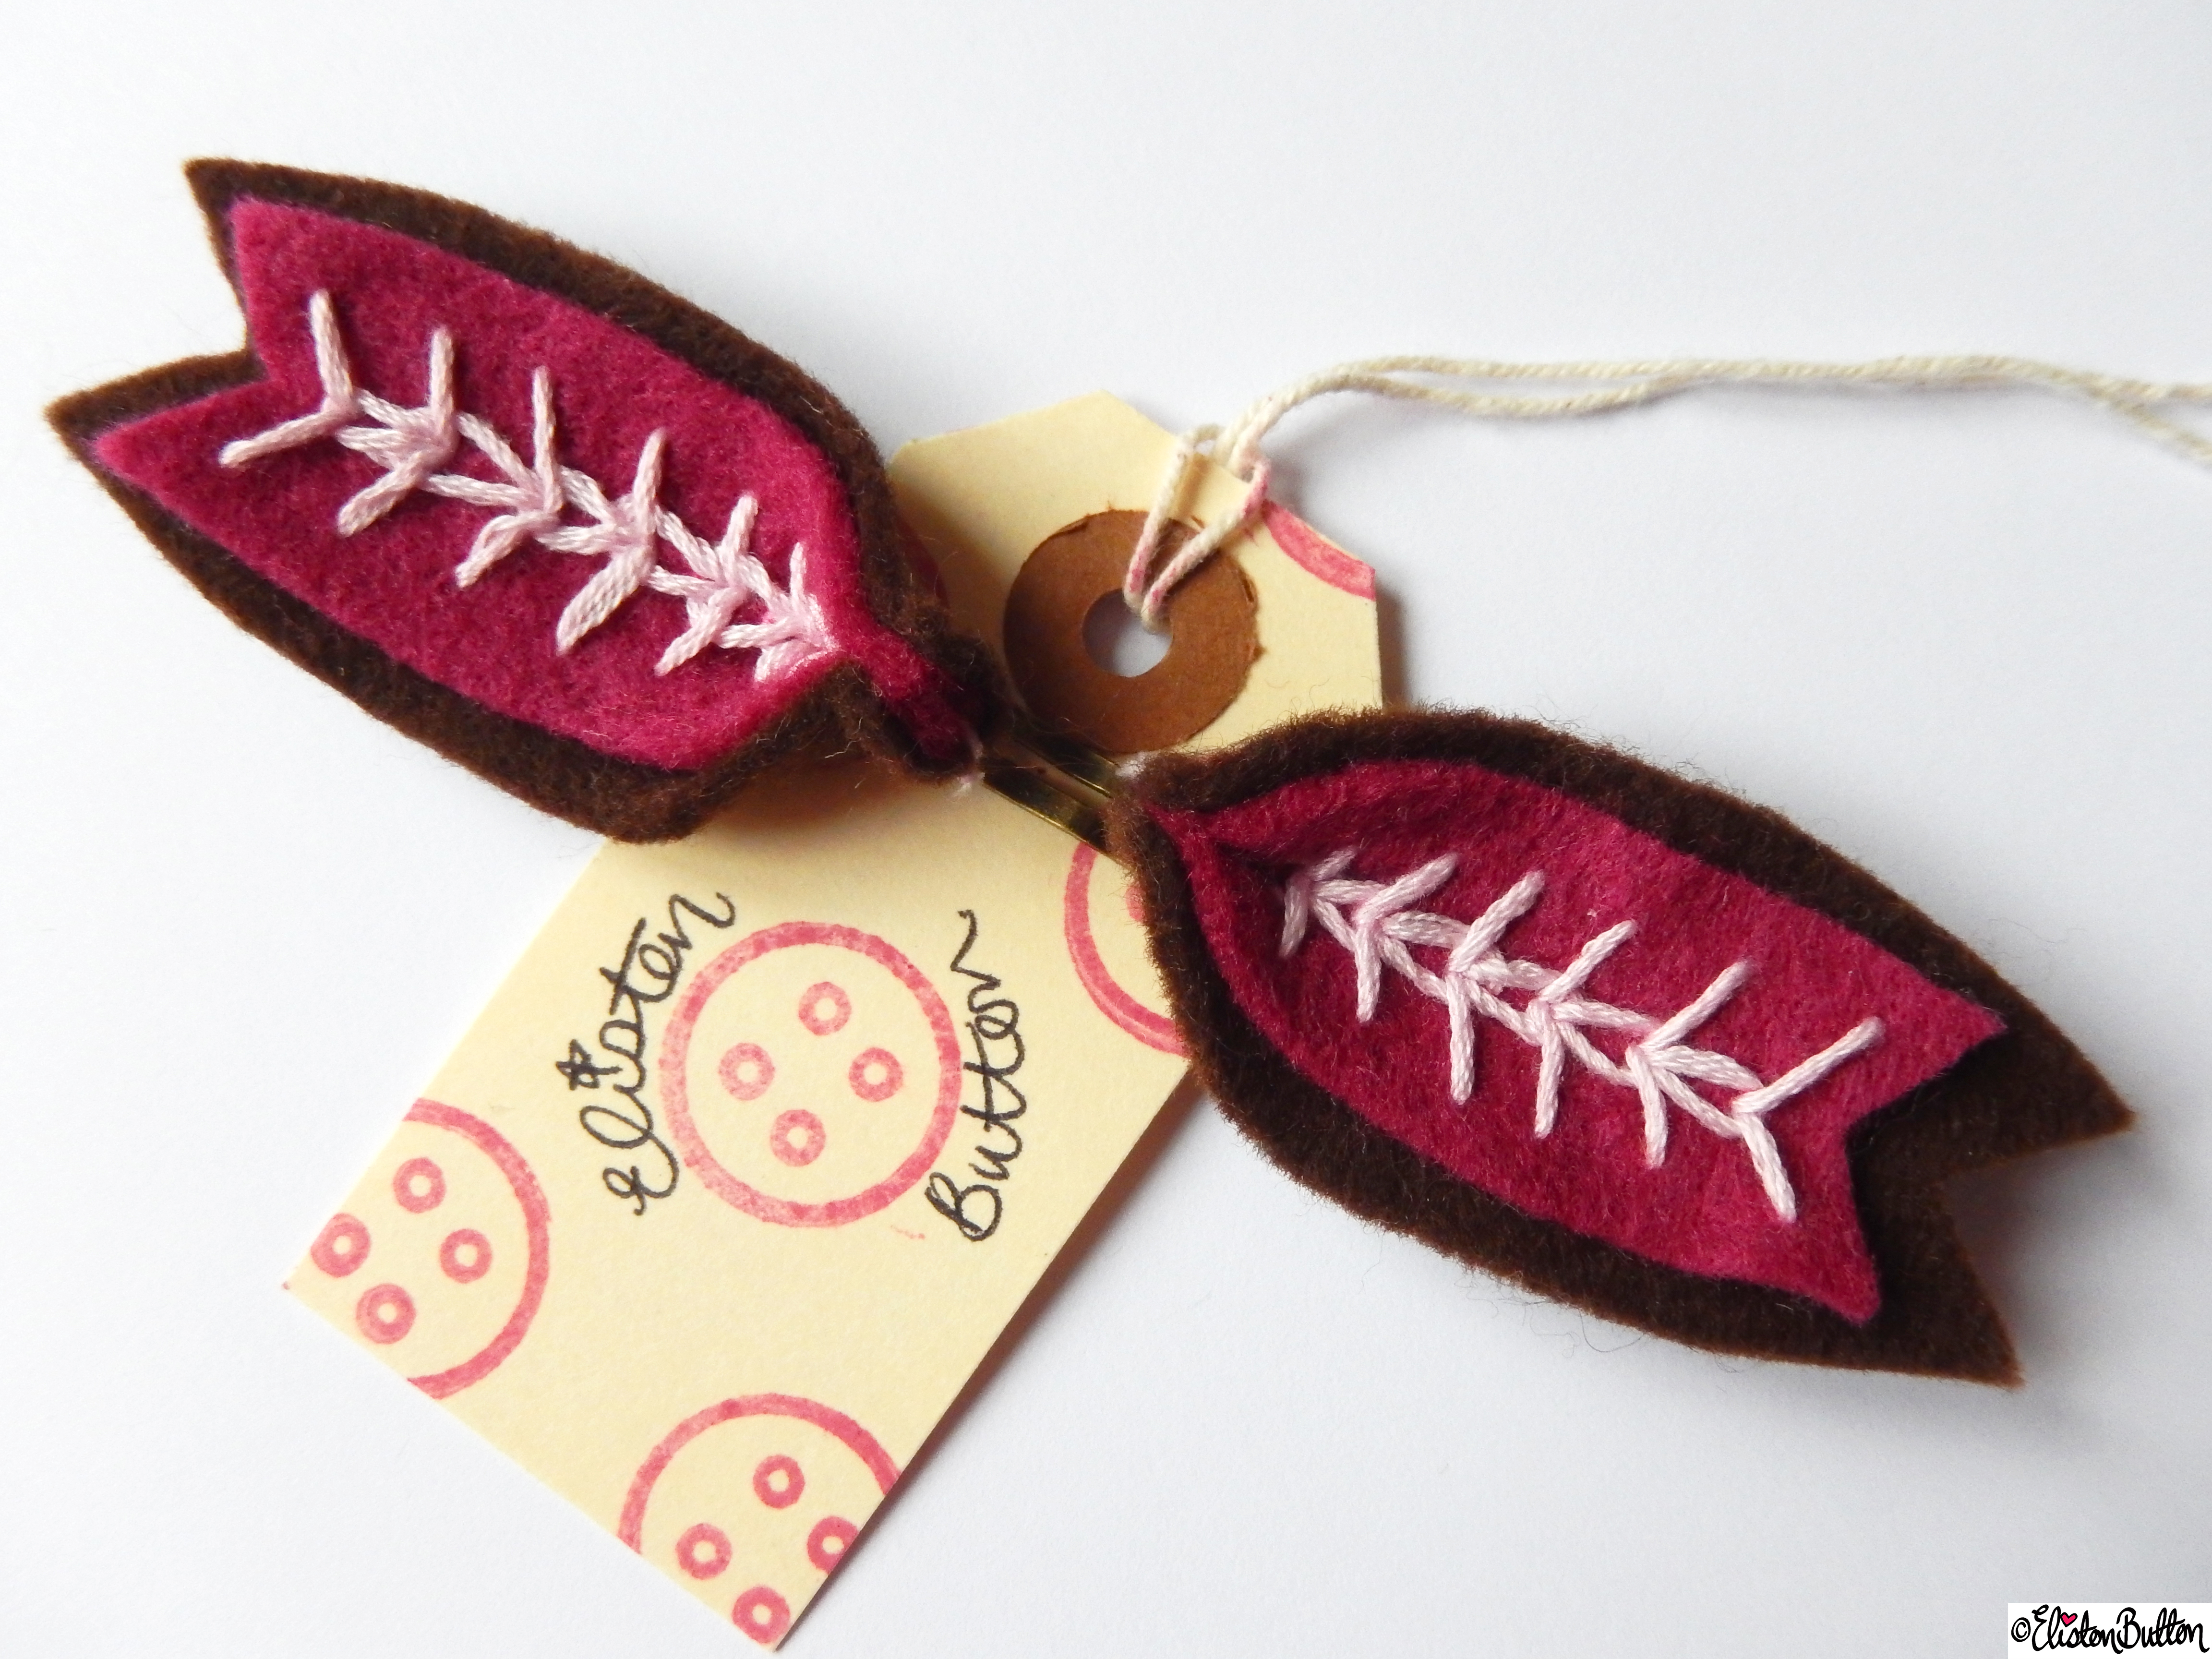 Chocolate Brown, Raspberry Pink and Pastel Pink Embroidered Hair Grips on Branded Luggage Tag - Create 28 - No.4 - Embroidered Felt Petal Hair Grips at www.elistonbutton.com - Eliston Button - That Crafty Kid – Art, Design, Craft & Adventure.